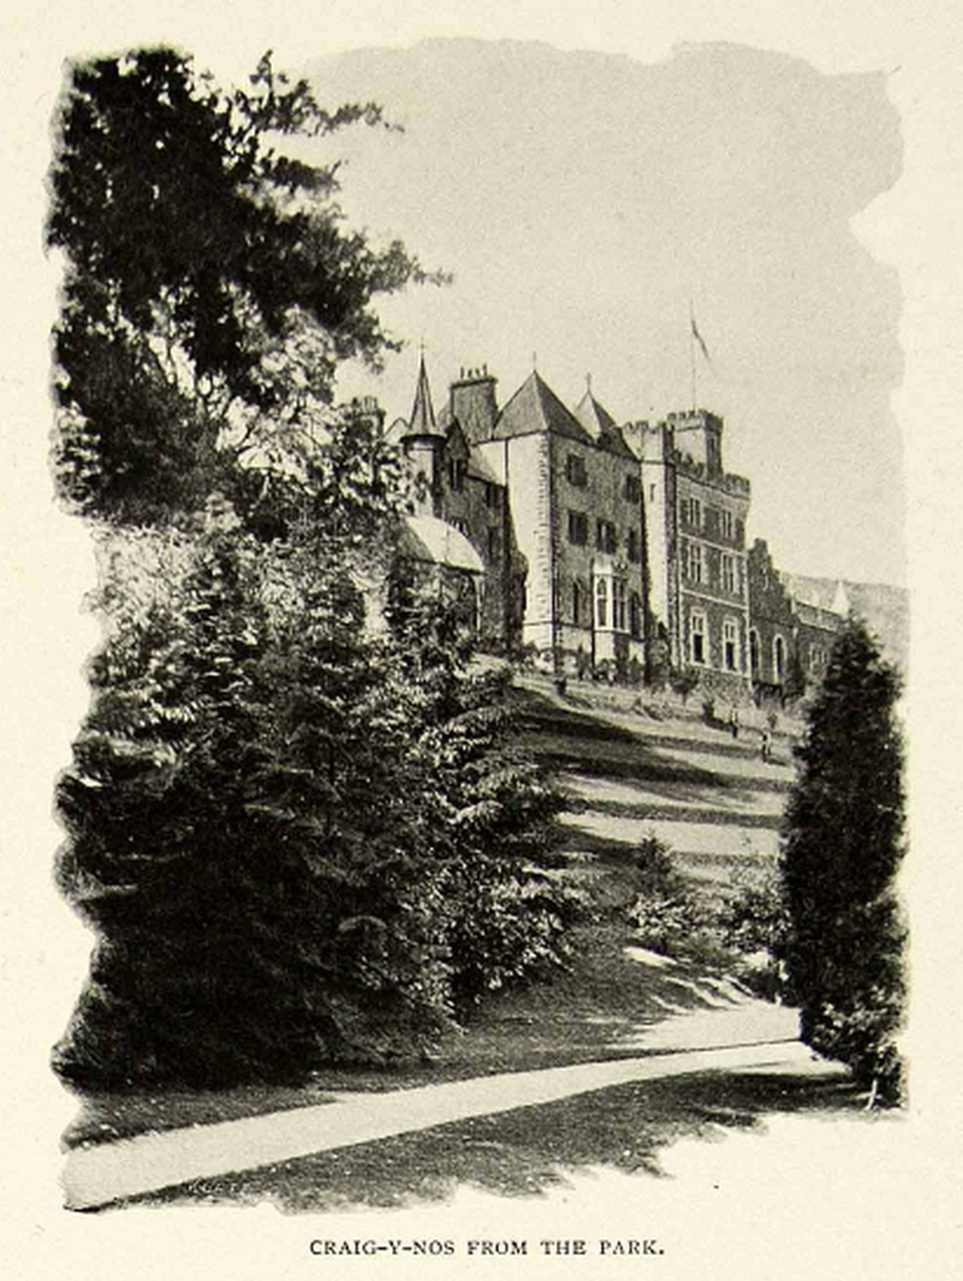 Rear aspect of Craig y Nos Castle in Adelina Patti's era, pre 1920.